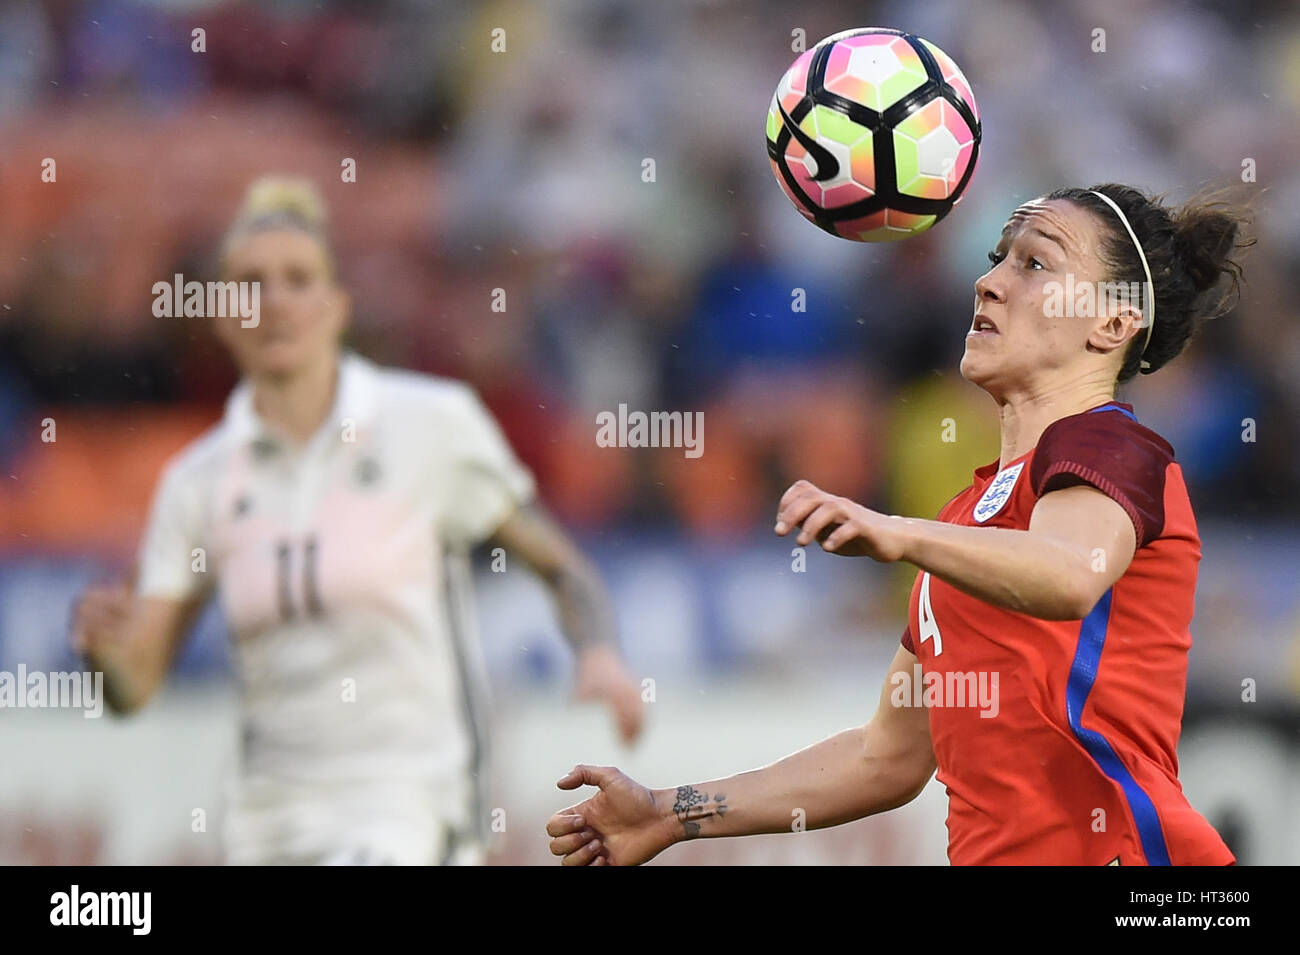 Washington DC, USA. 07th Mar, 2017. England's Lucy Bronze (4) keeps her eye on the ball during the match between Stock Foto